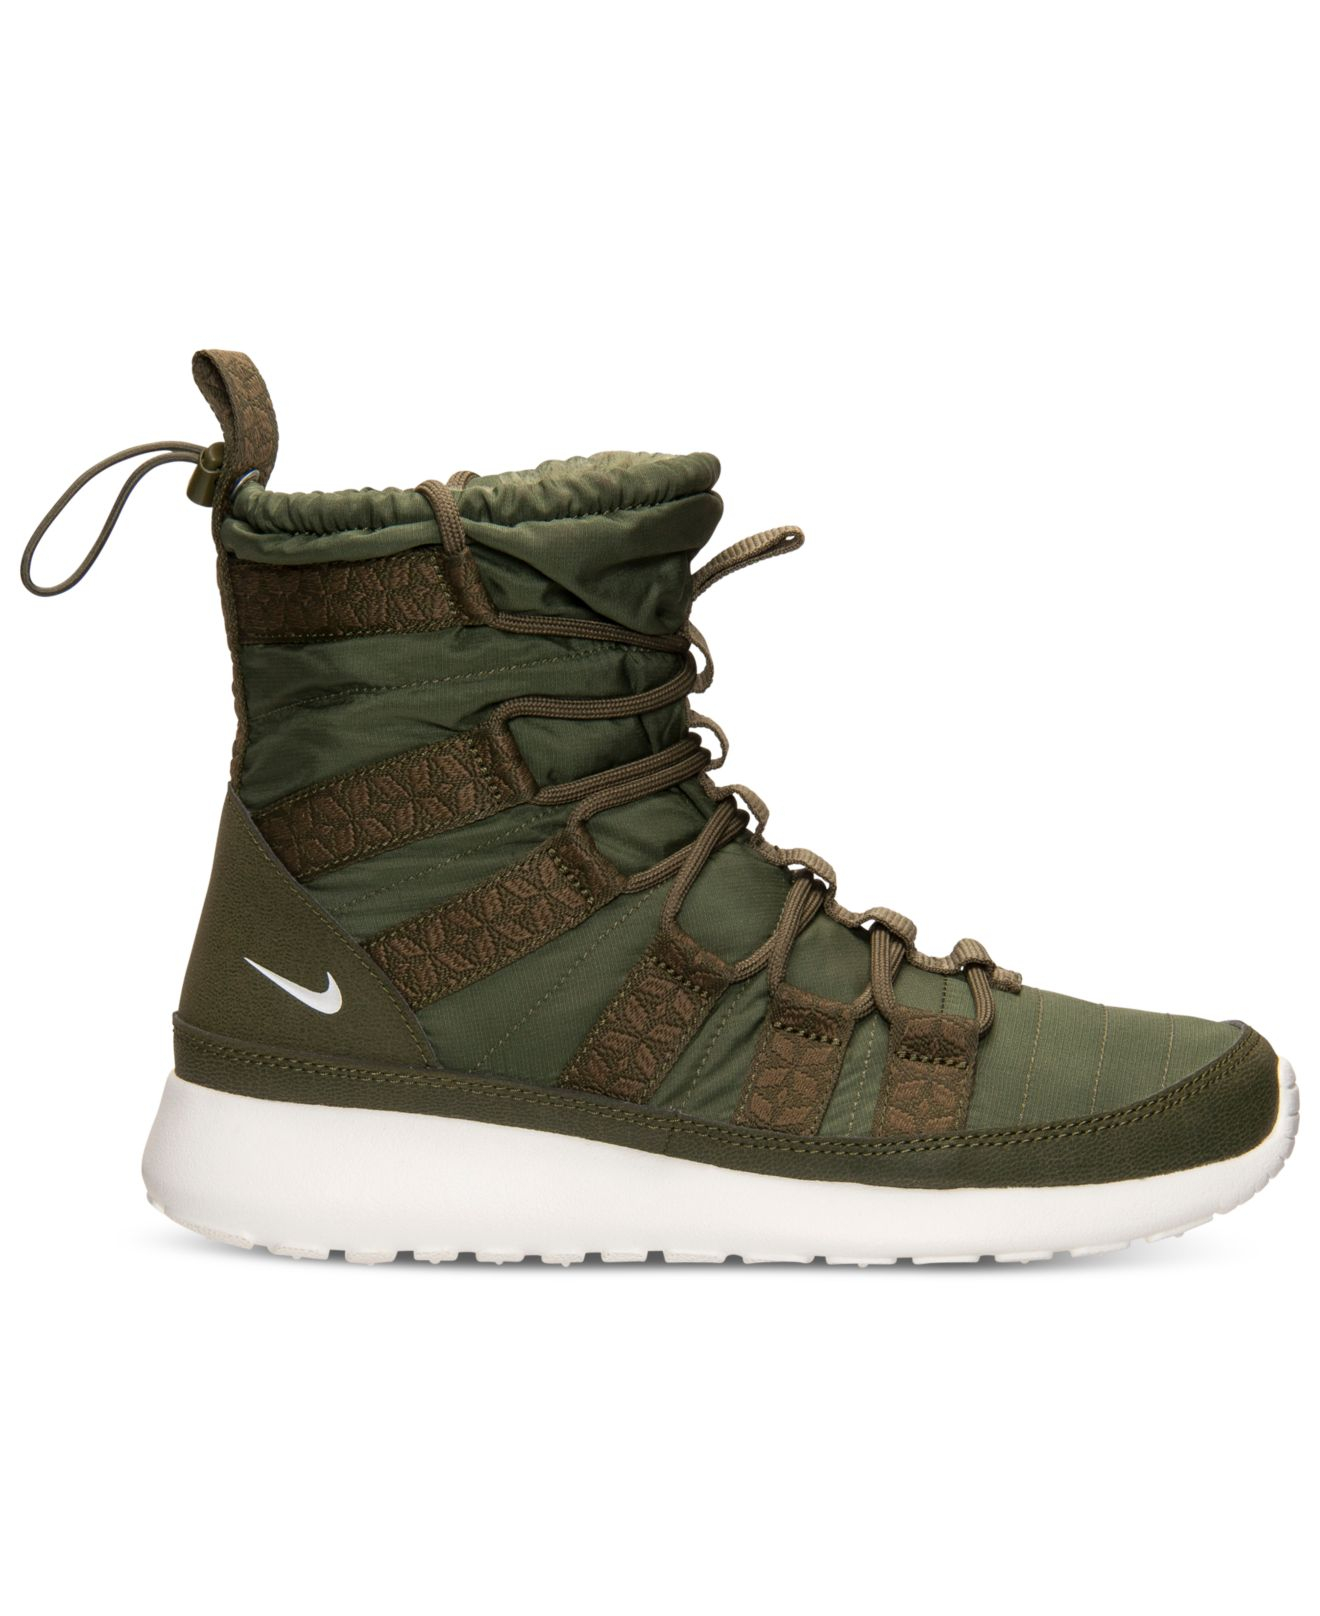 online retailer f847c a78d4 Lyst - Nike Women S Roshe Run Hi Sneakerboots From Finish Line in Green